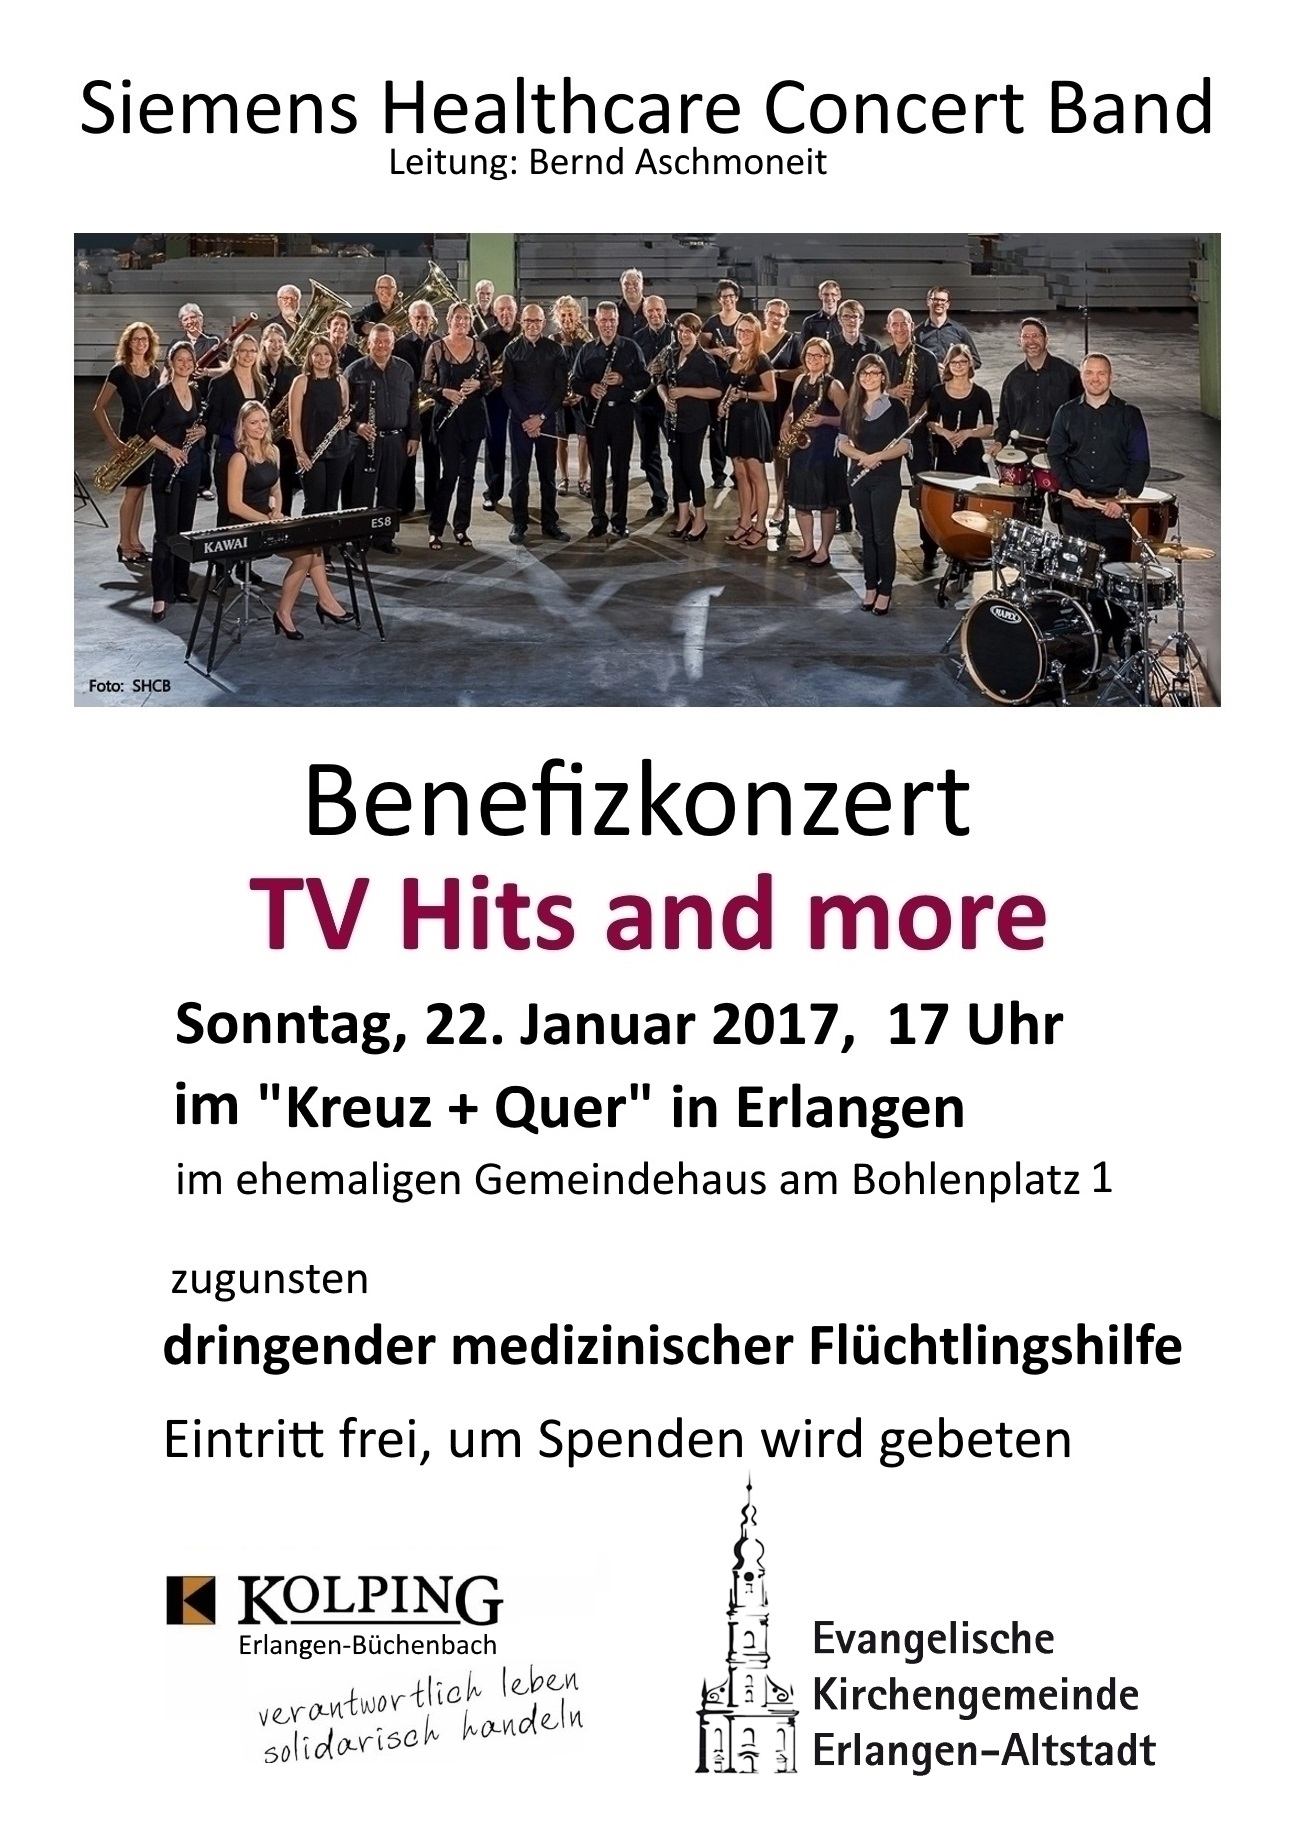 SHCB Flyer-Benefizkonzert TV-Hits and More 2017